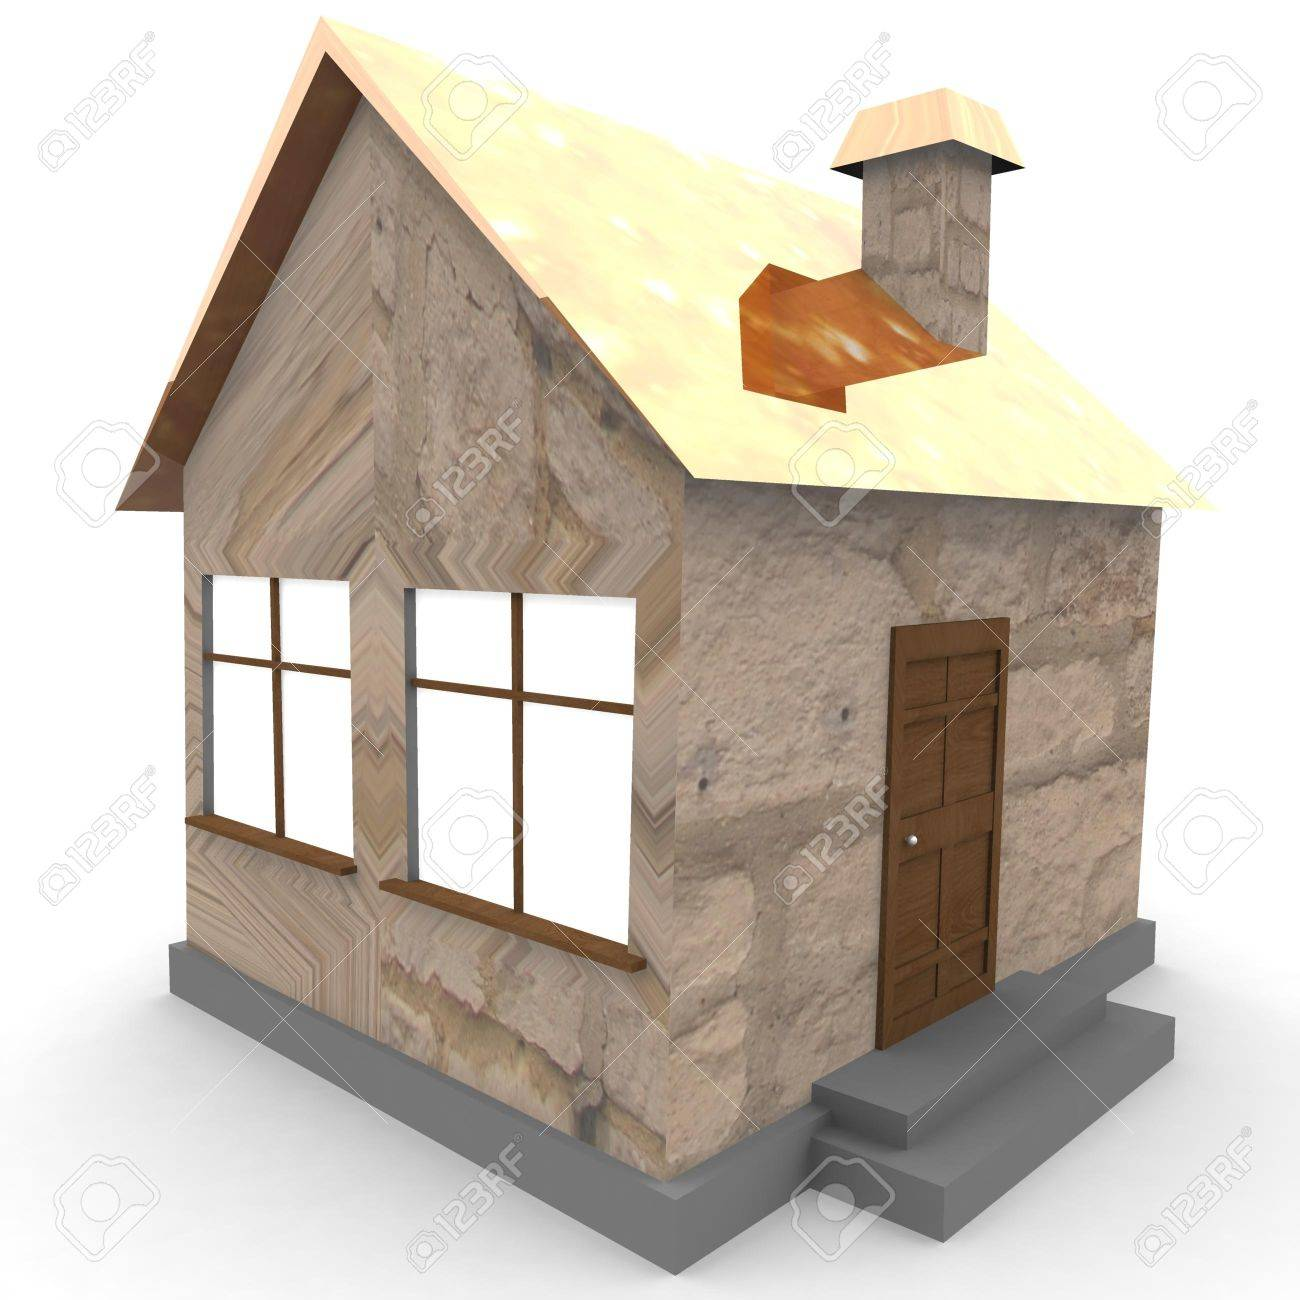 Model Of A House 3d Computer Modeling Stock Photo